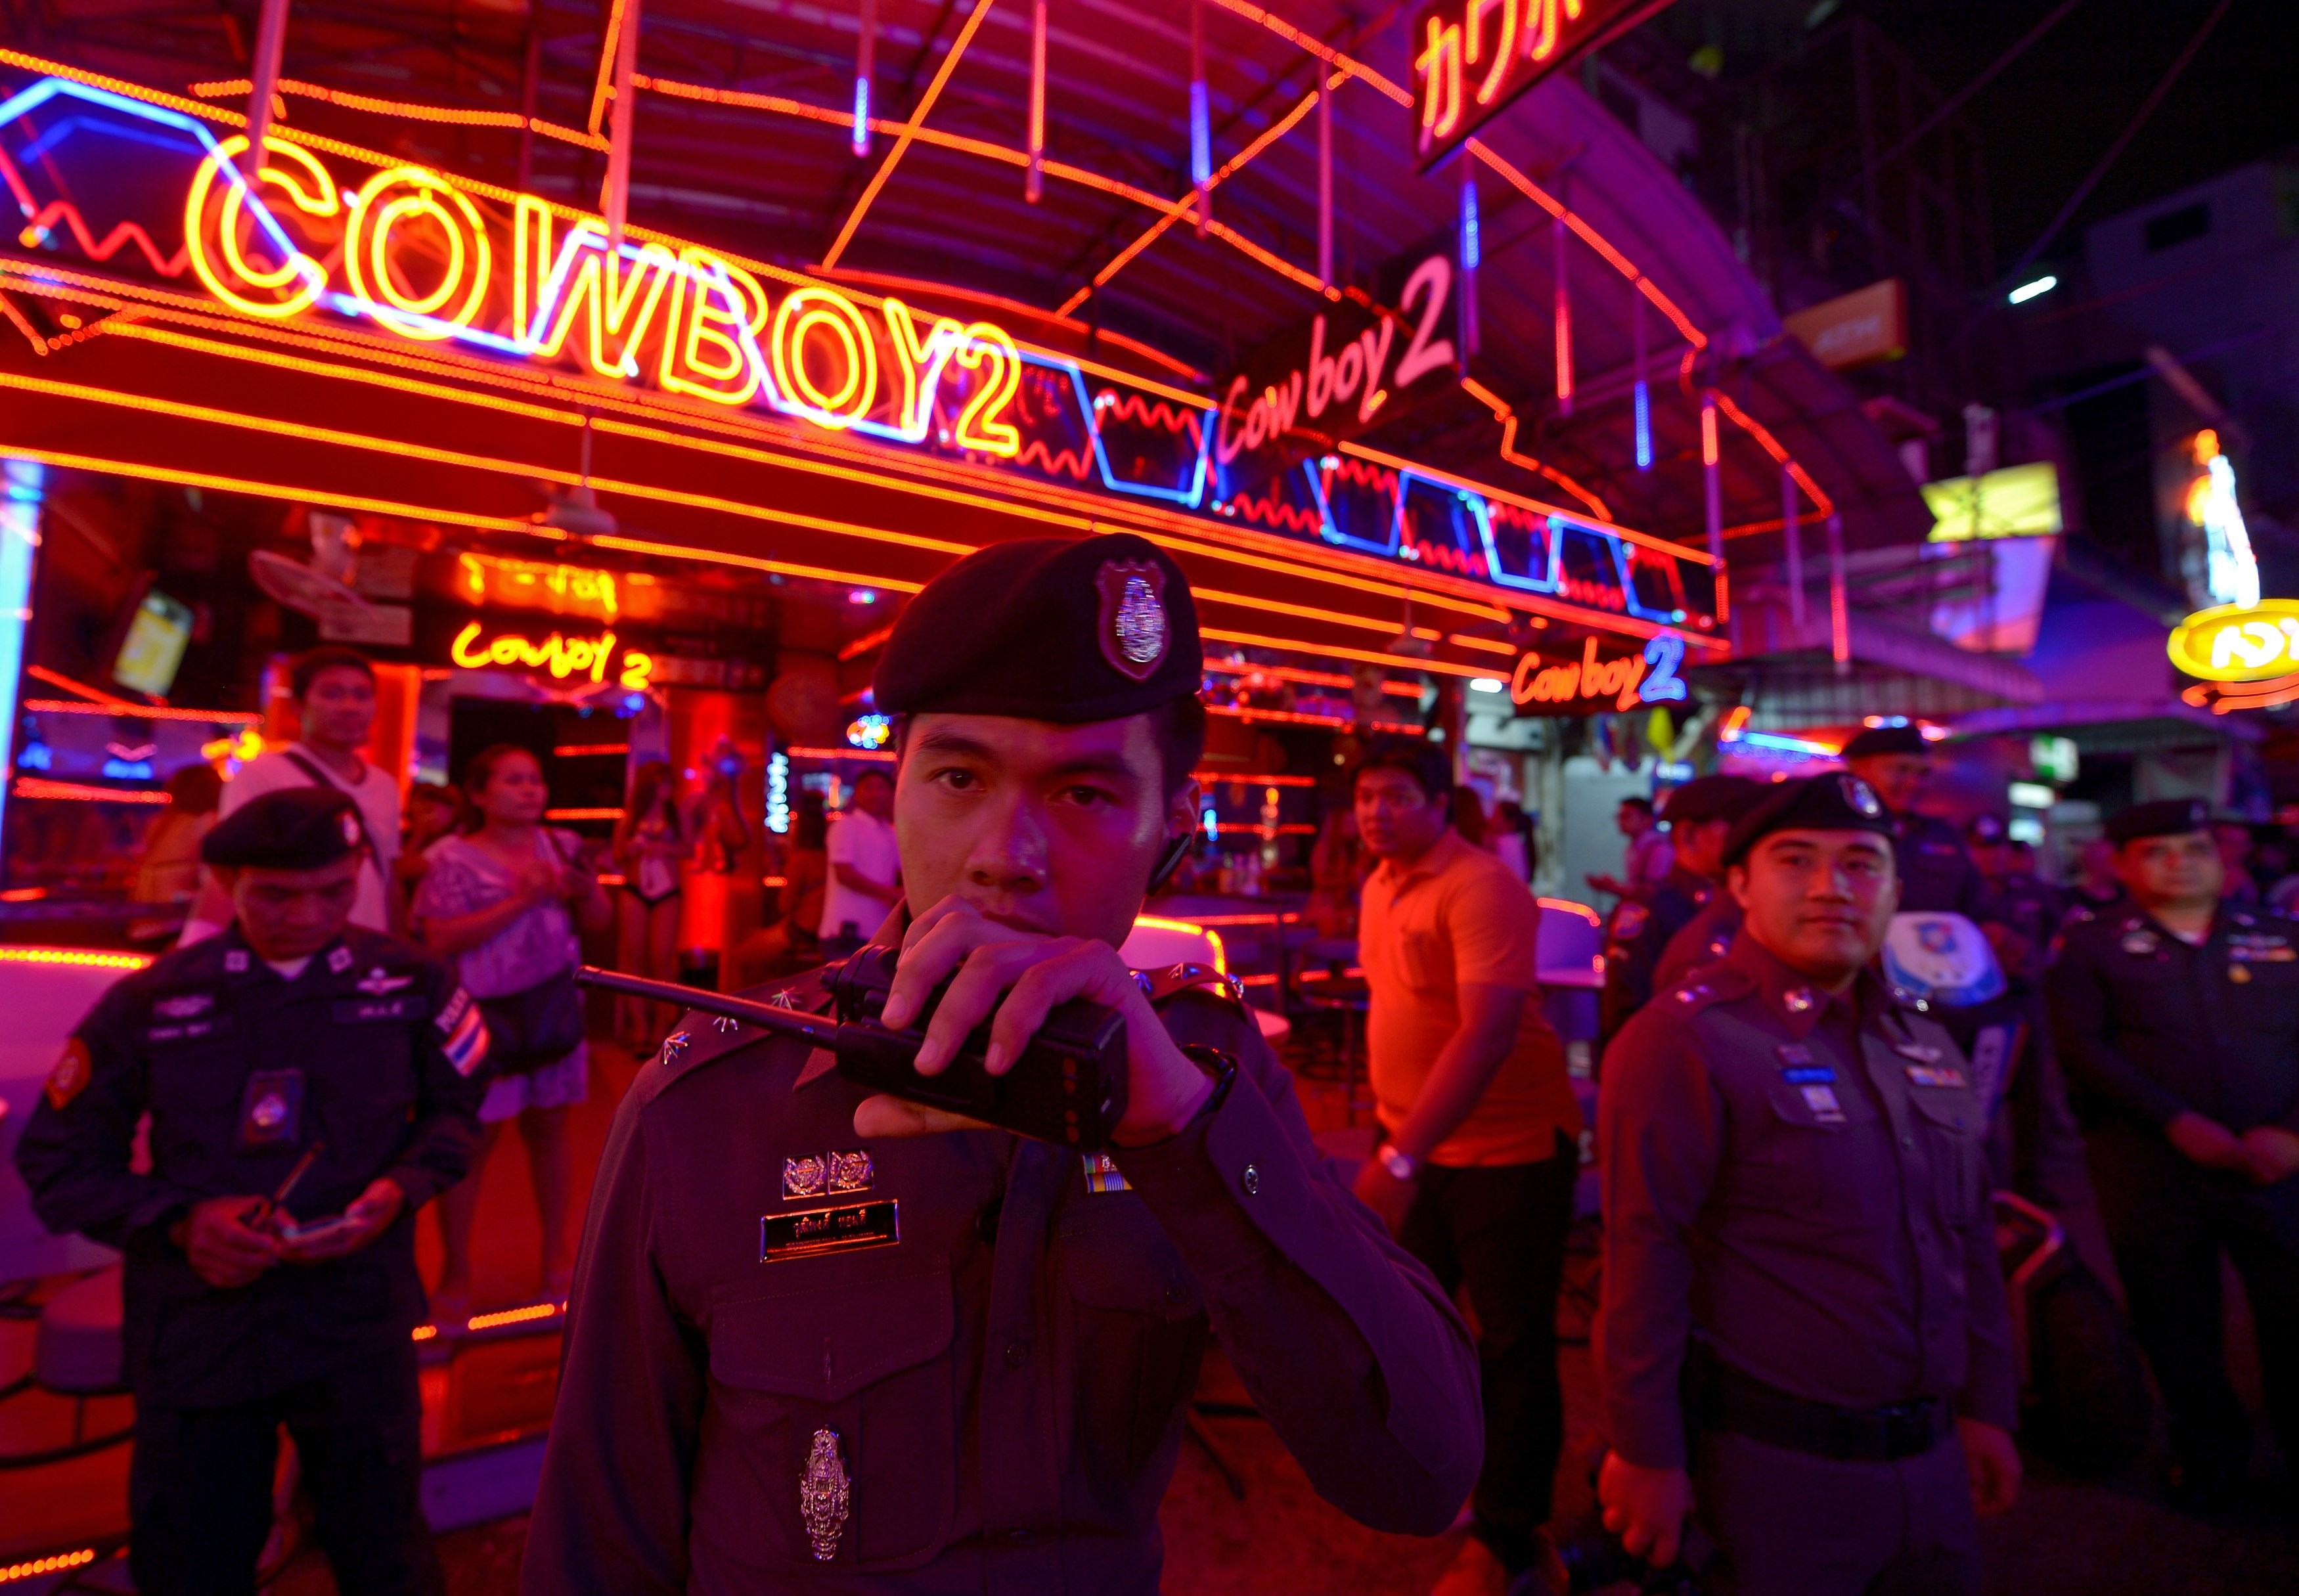 Thai policemen check security at bars in the tourist area of Bangkok on August 19, 2015.